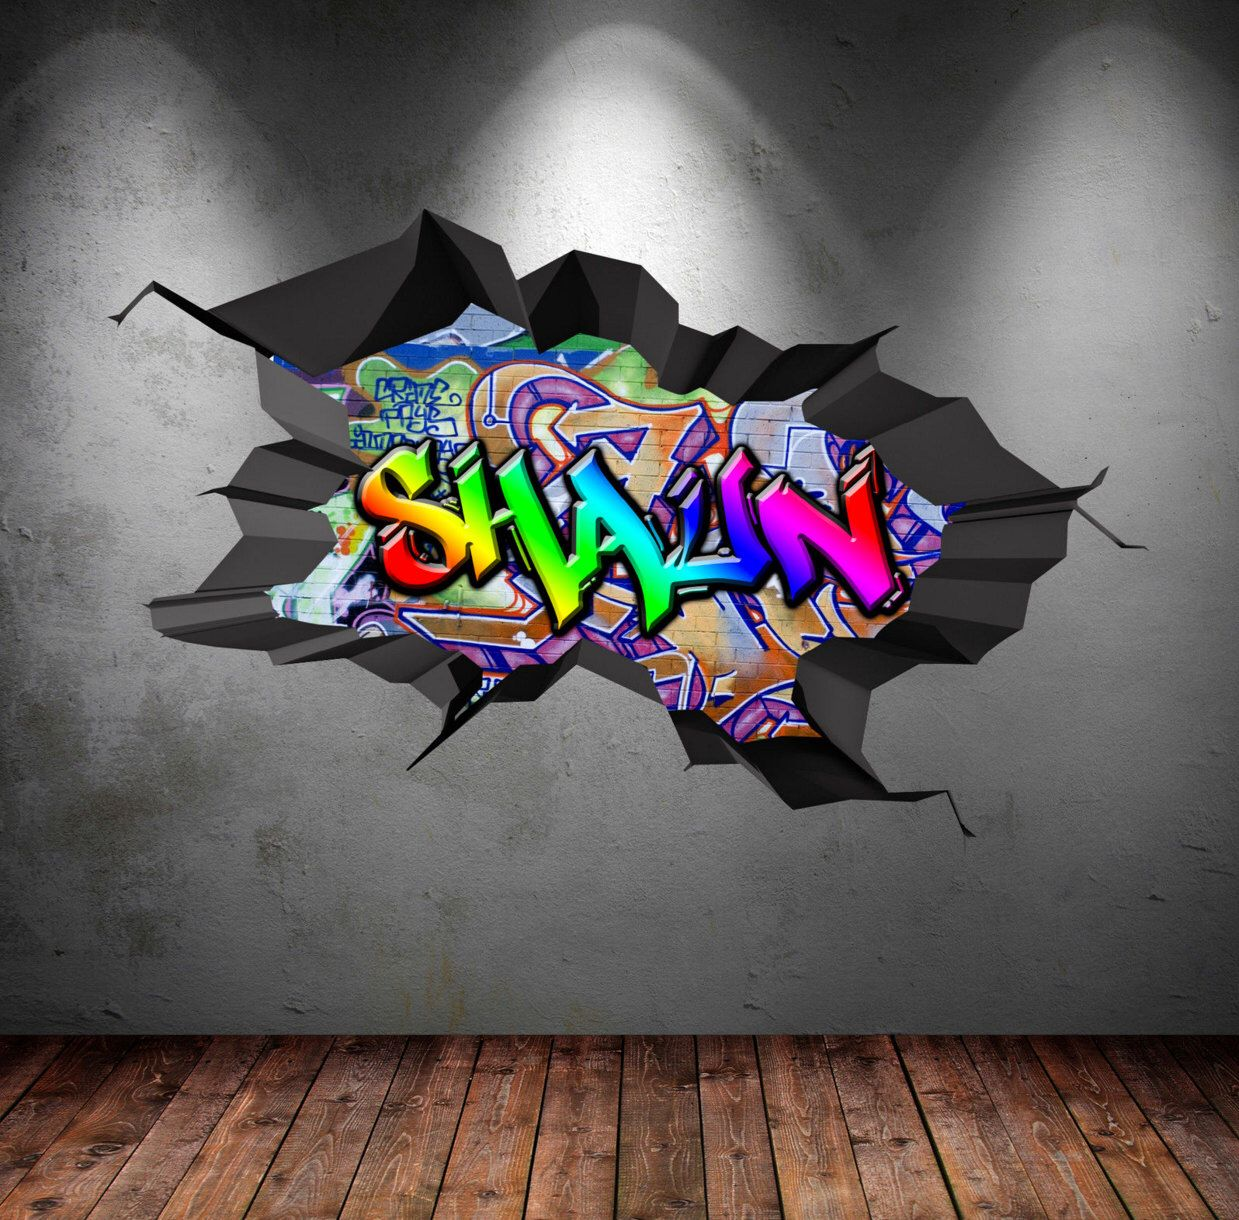 Graffiti wall art bedroom - Personalised Name Full Colour Graffiti Wall Decals Cracked 3d Wall Sticker Mural Decal Graphic Wall Art Bedroom